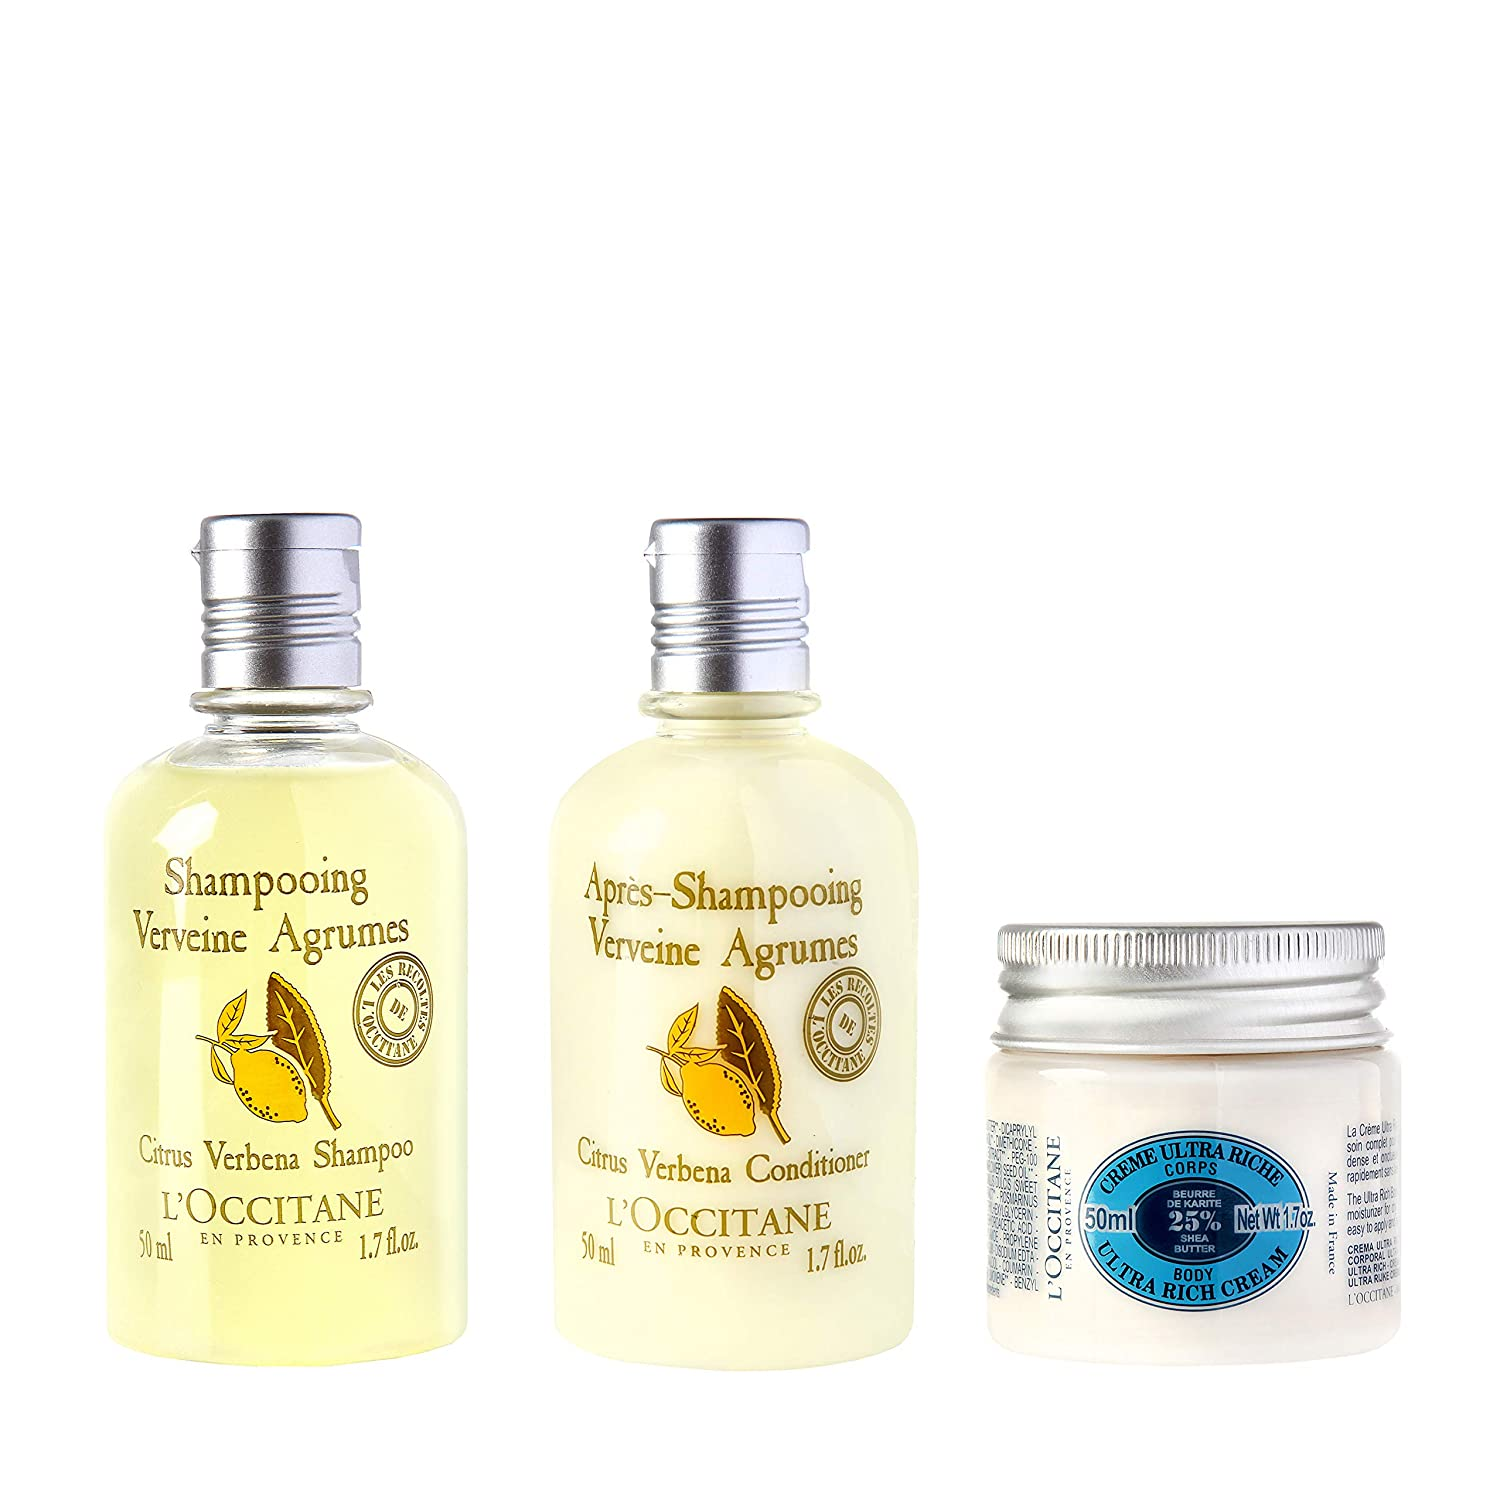 L'Occitane Body and Hair Care Shampoo and Conditioner set